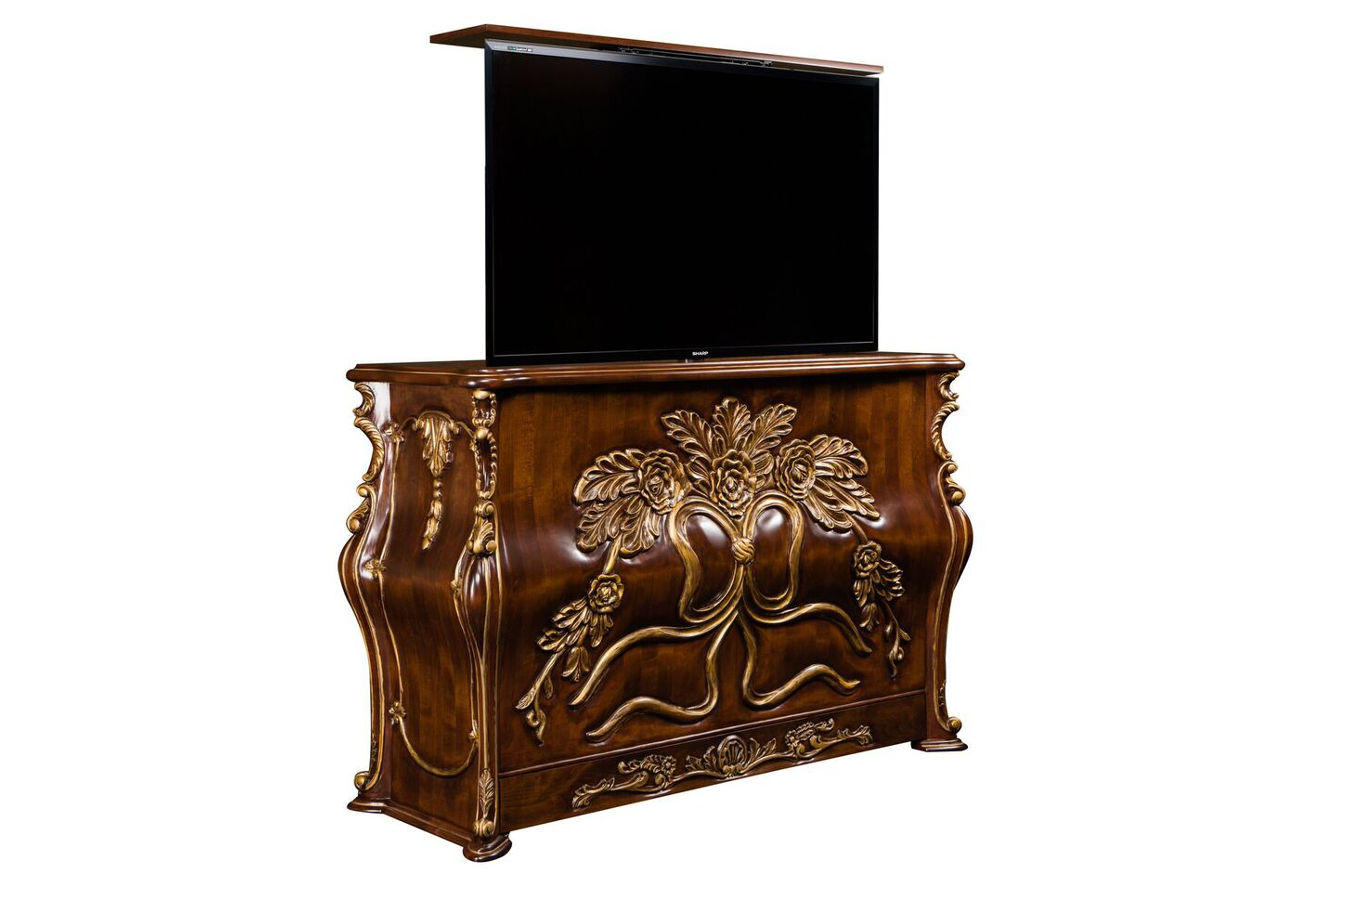 Ribbon Bombay Buffet TV Cabinet with Lift - TV Cabinet Lift TV Cabinet With Lift Ribbon TV Cabinet